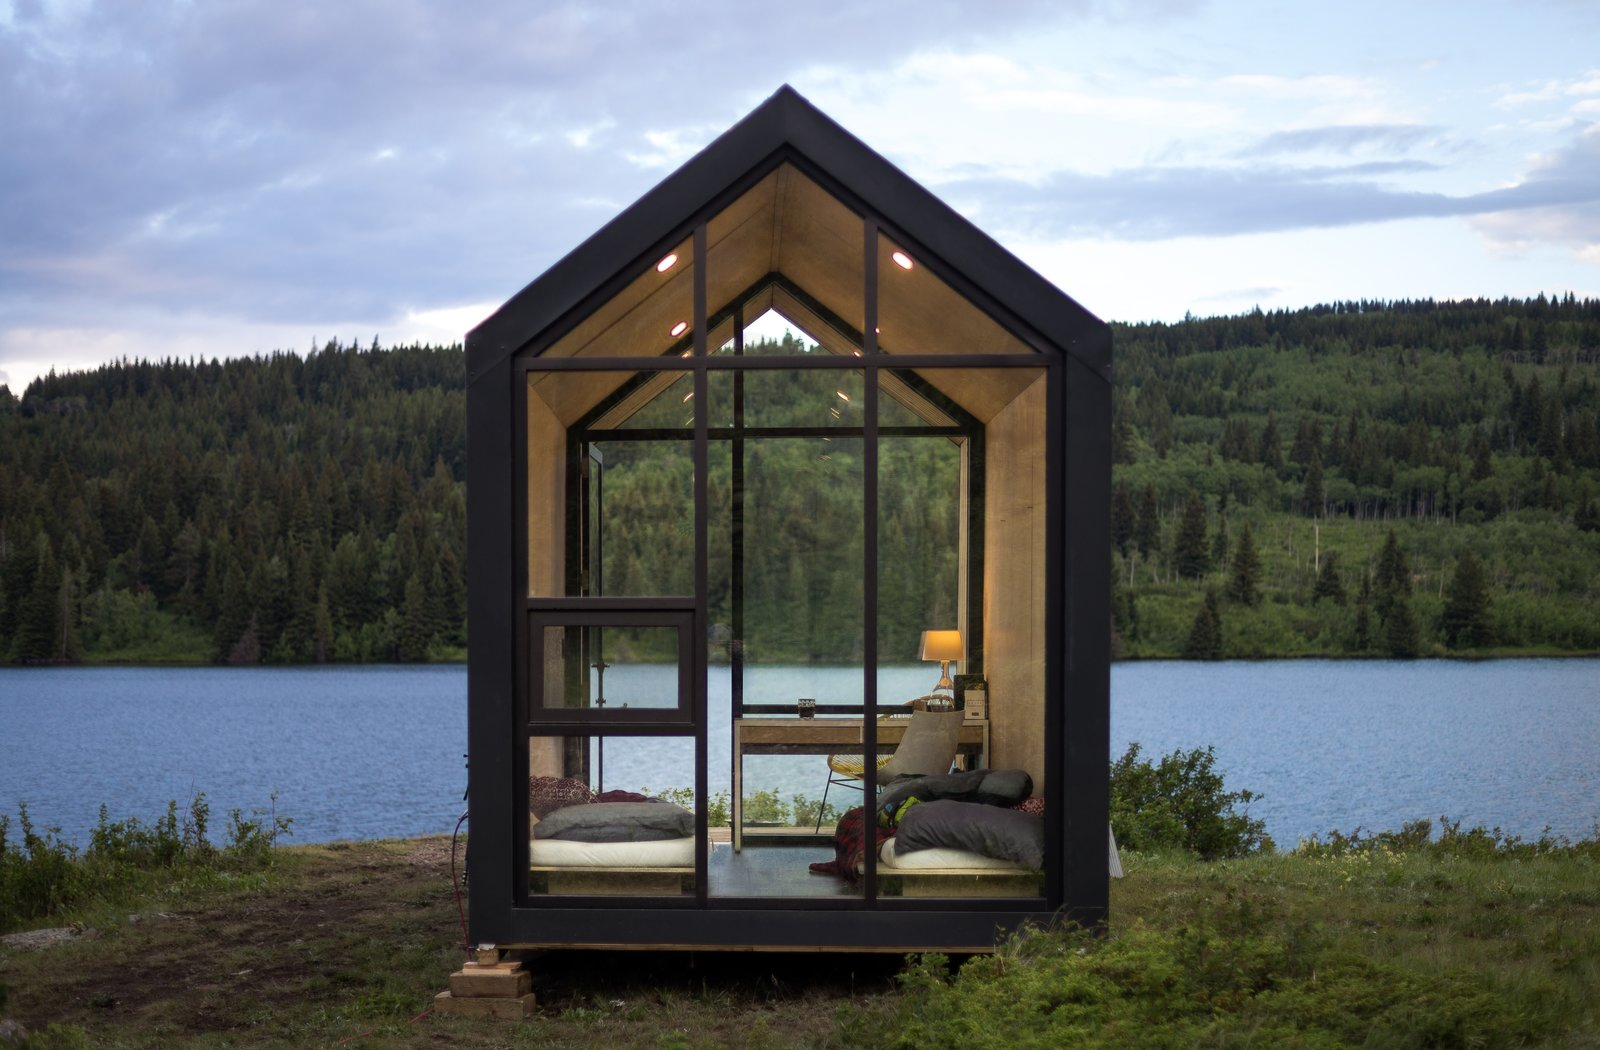 Exterior, Prefab Building Type, Metal Roof Material, Wood Siding Material, and Gable RoofLine Although the team states that a Mono can be placed anywhere in North America without a permit—like a backyard—a place with a view is preferred.     Photos from This Sleek Prefab Can be Built in Just Six Weeks for Under $22K